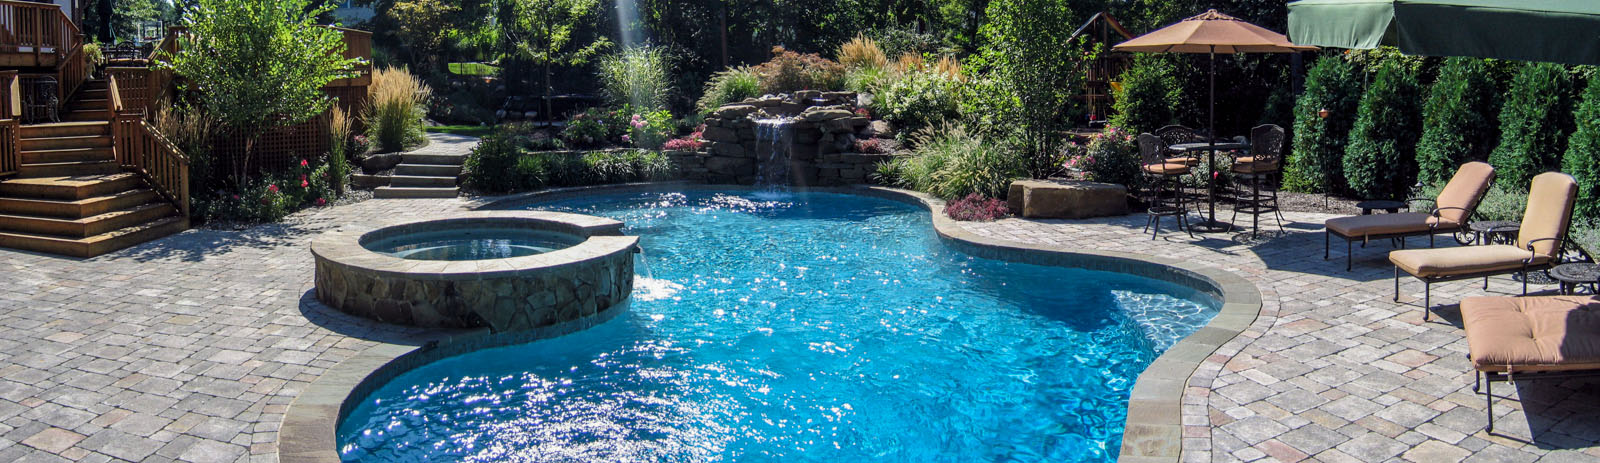 custom swimming pool design in airmont ny, pool waterfall, spa